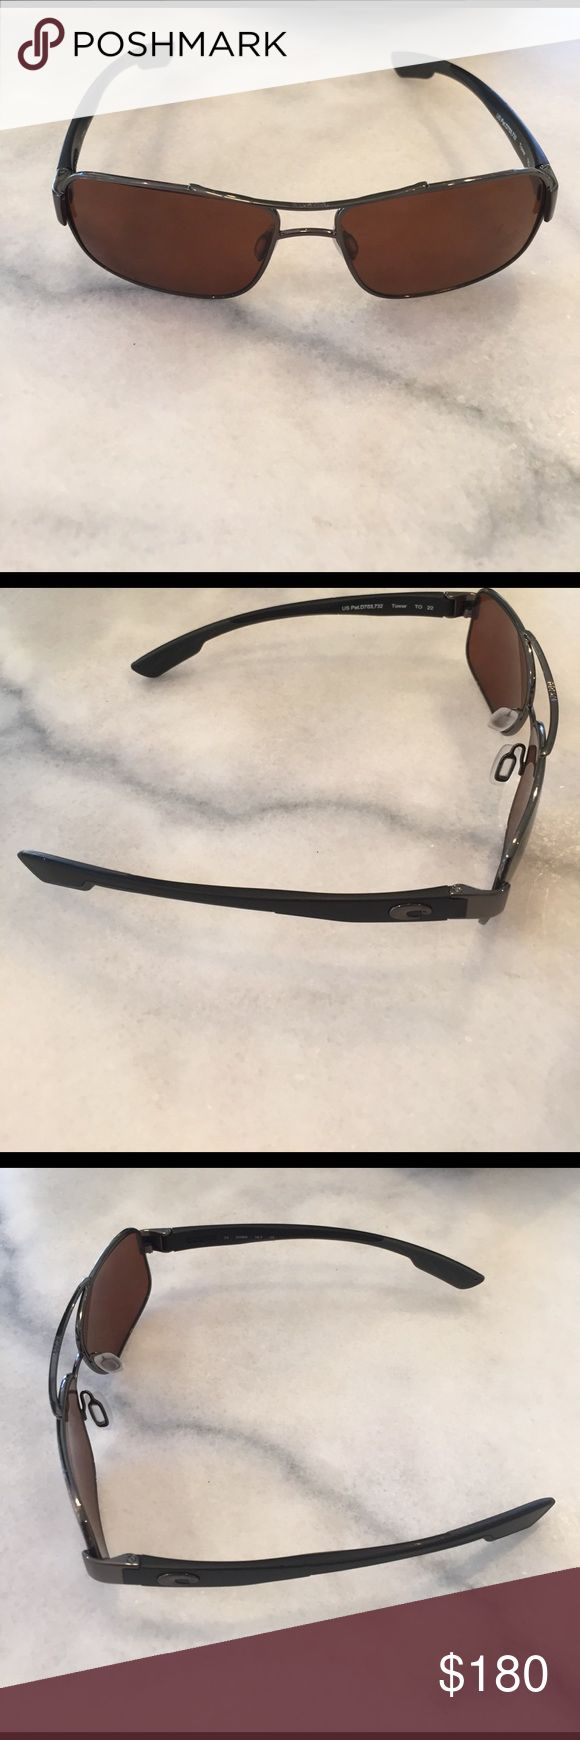 Costa Del Mar Tower Sunglasses Lightly used Costa glasses. In perfect condition! Polarized tower glasses! Link: https://www.costadelmar.com/us/en/women/sunglasses/view-all/tower/TO.html Costa Del Mar Accessories Sunglasses